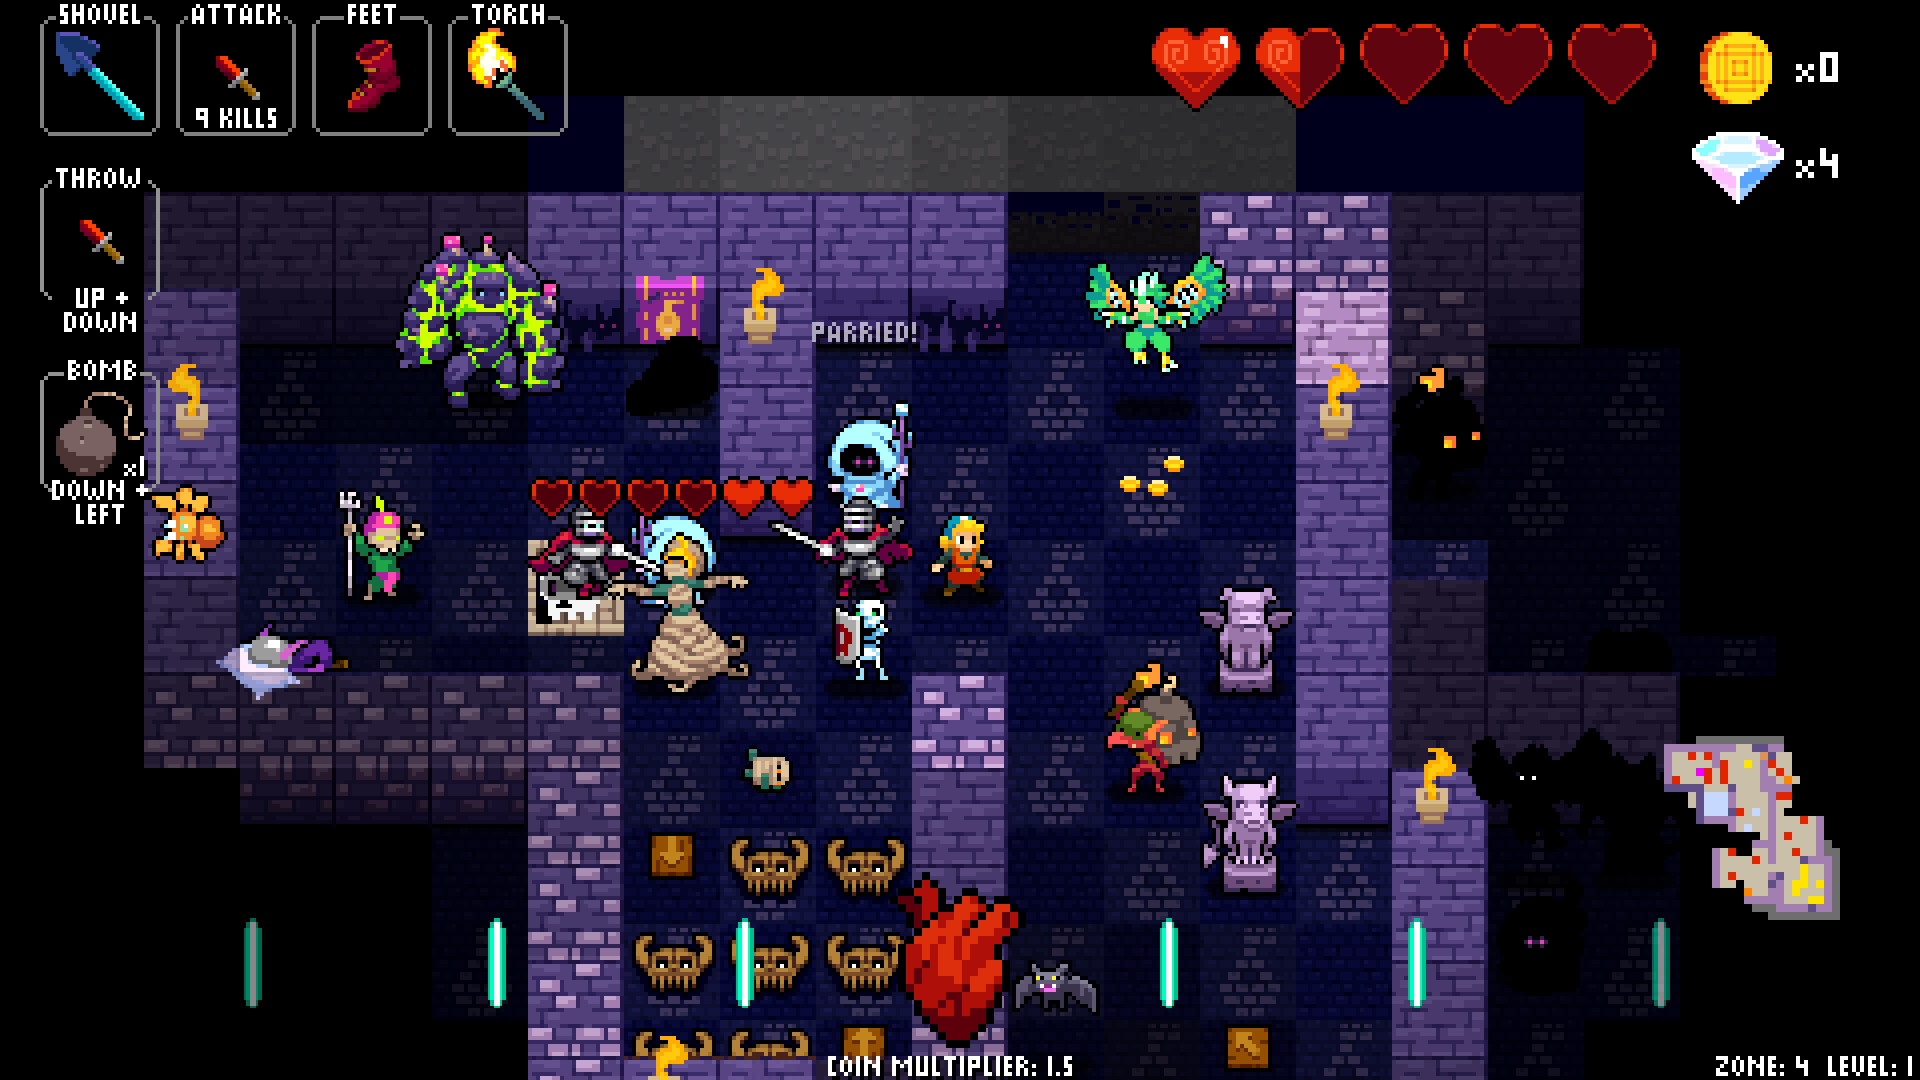 crypt_of_the_necrodancer_roguelike_for_linux_mac_windows_pc_screenshot3